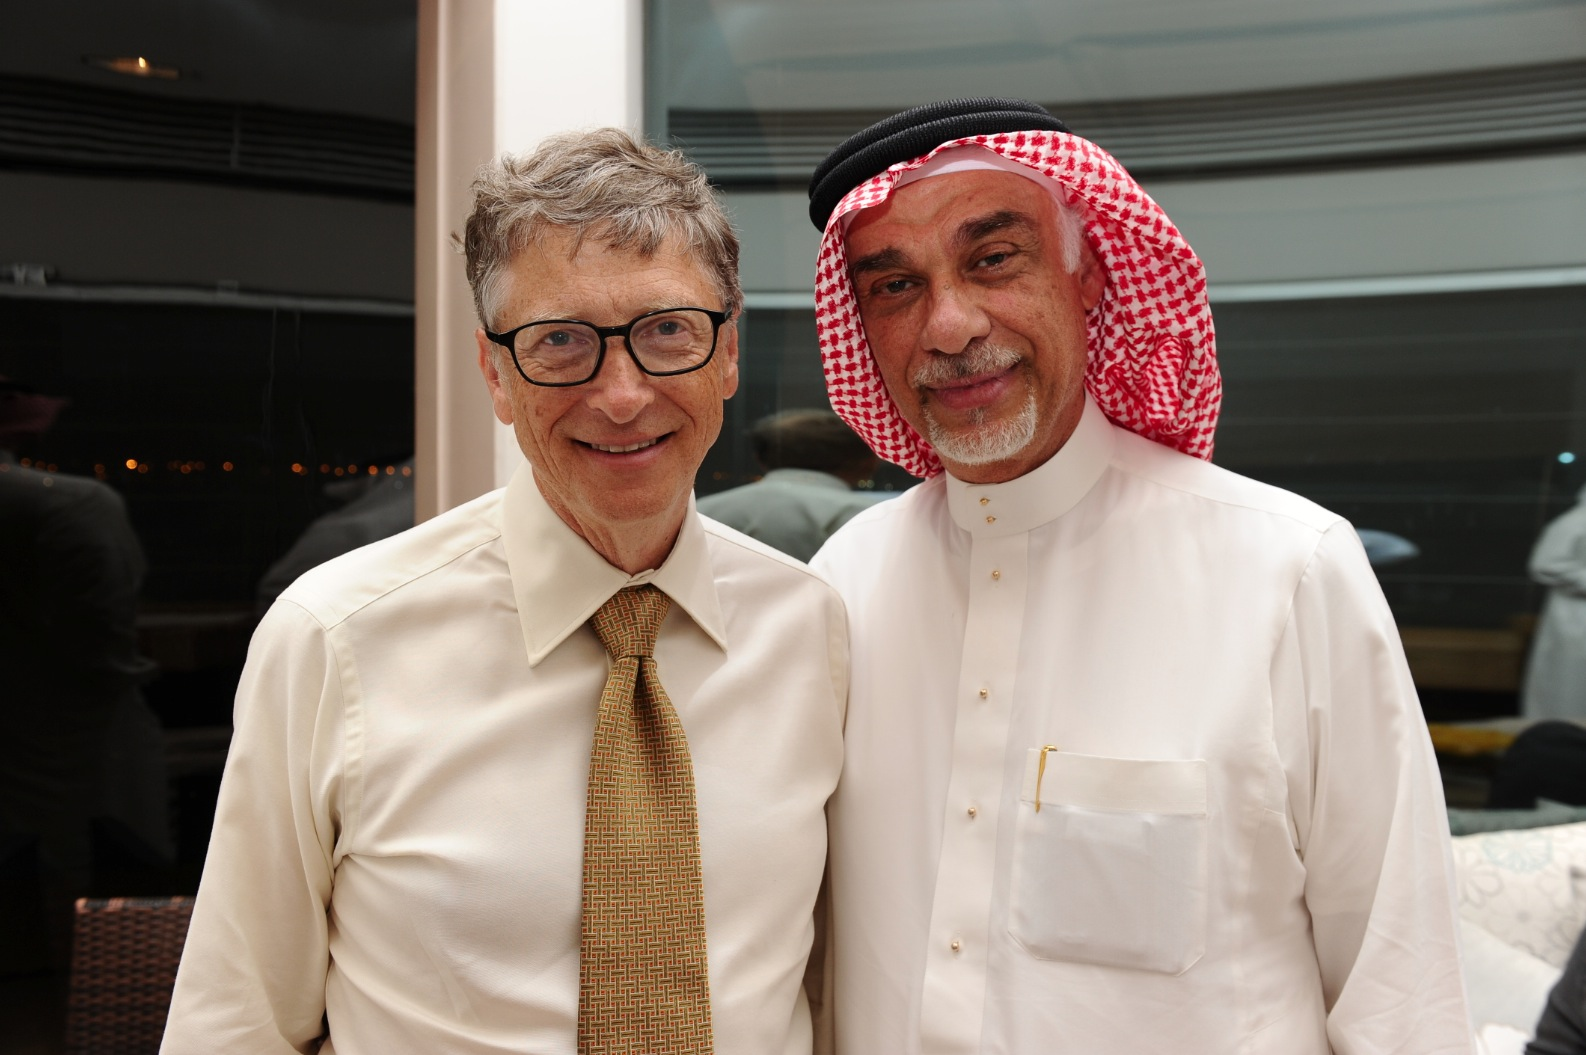 Alireza Family host Bill Gates